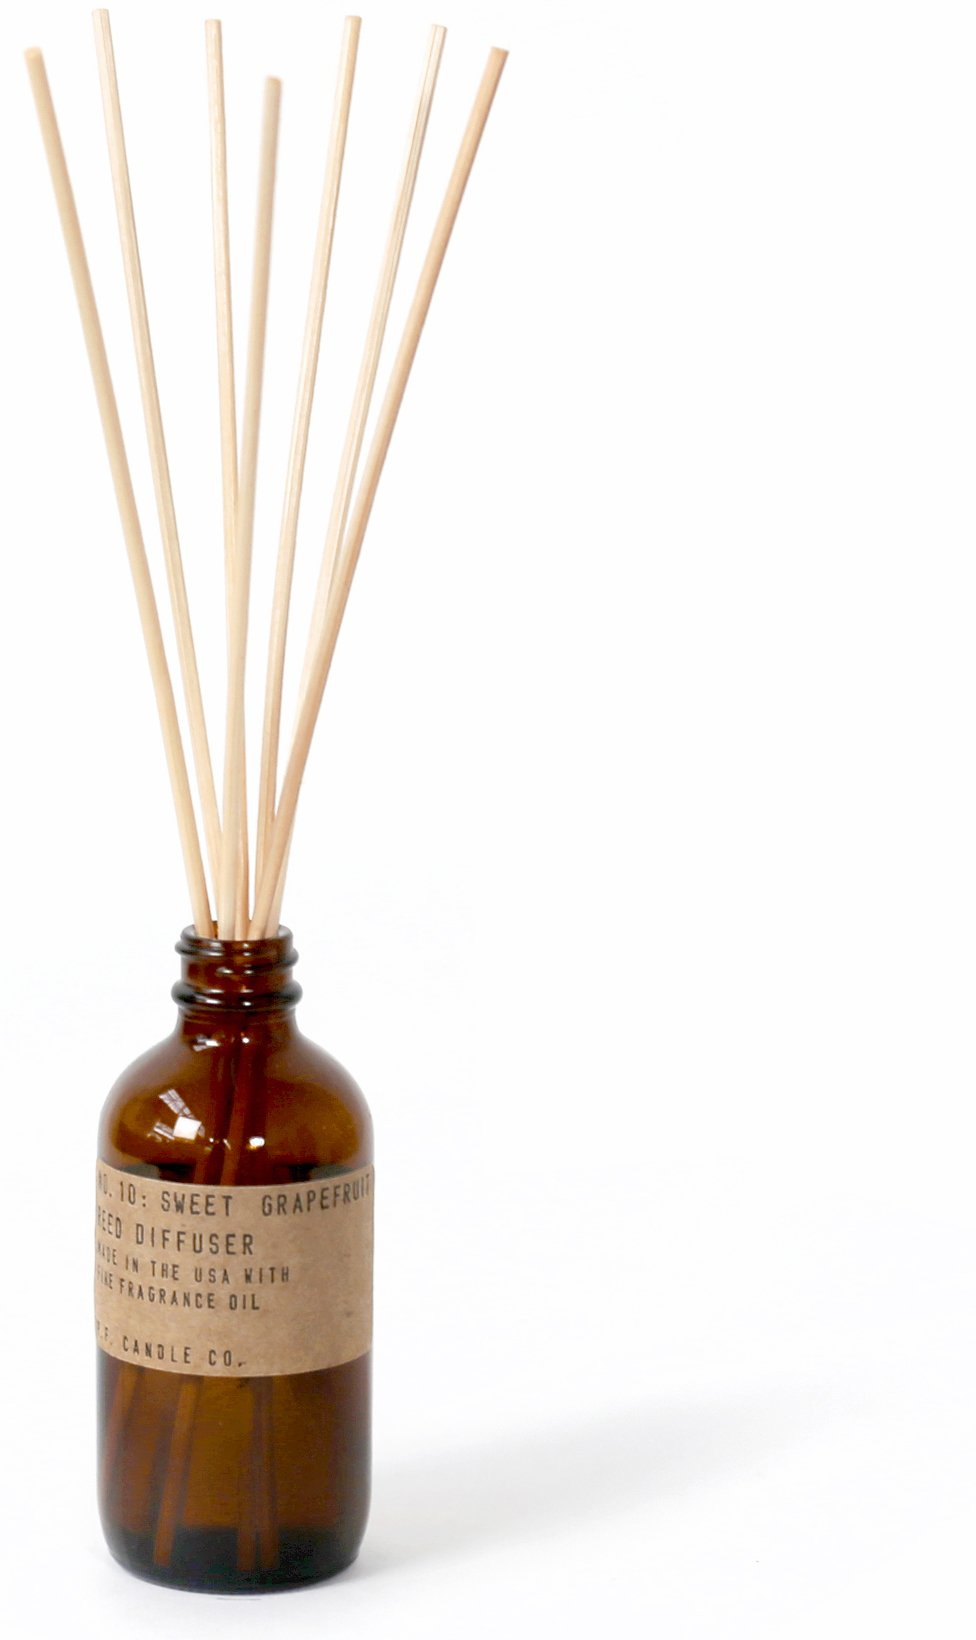 P.F. Candle Co. - No. 10: Sweet Grapefruit Diffuser